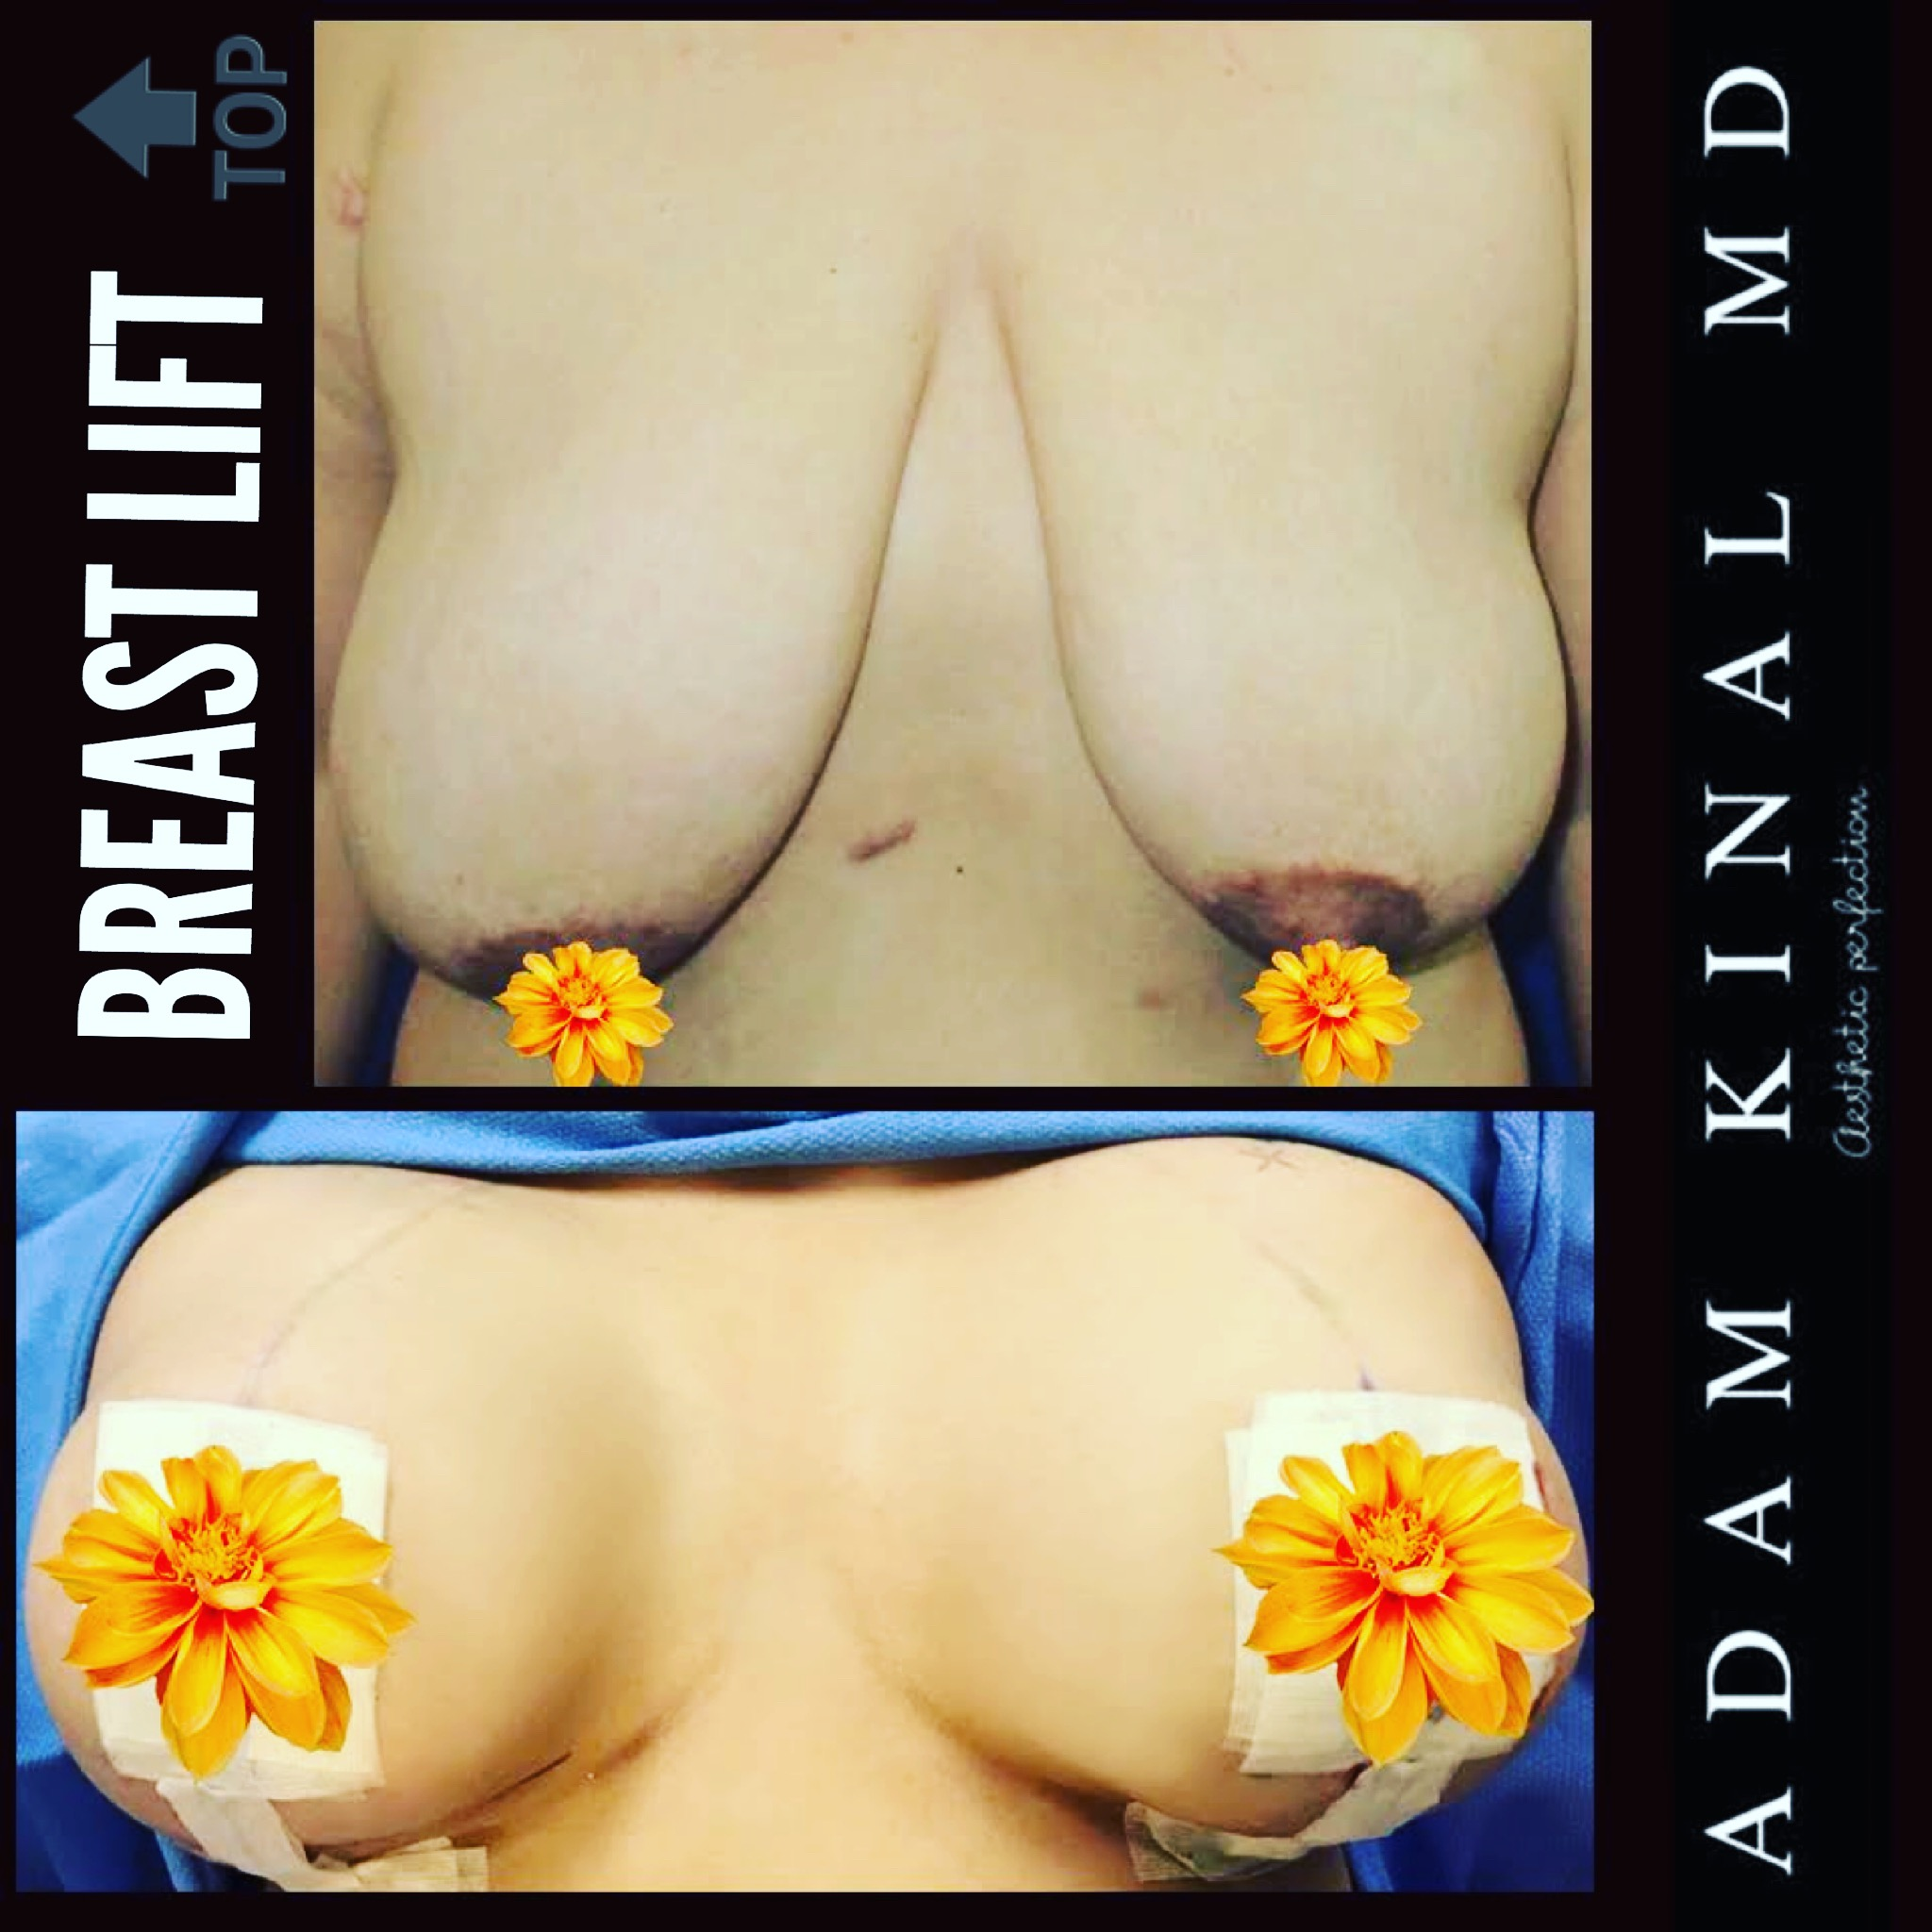 BreastLift923